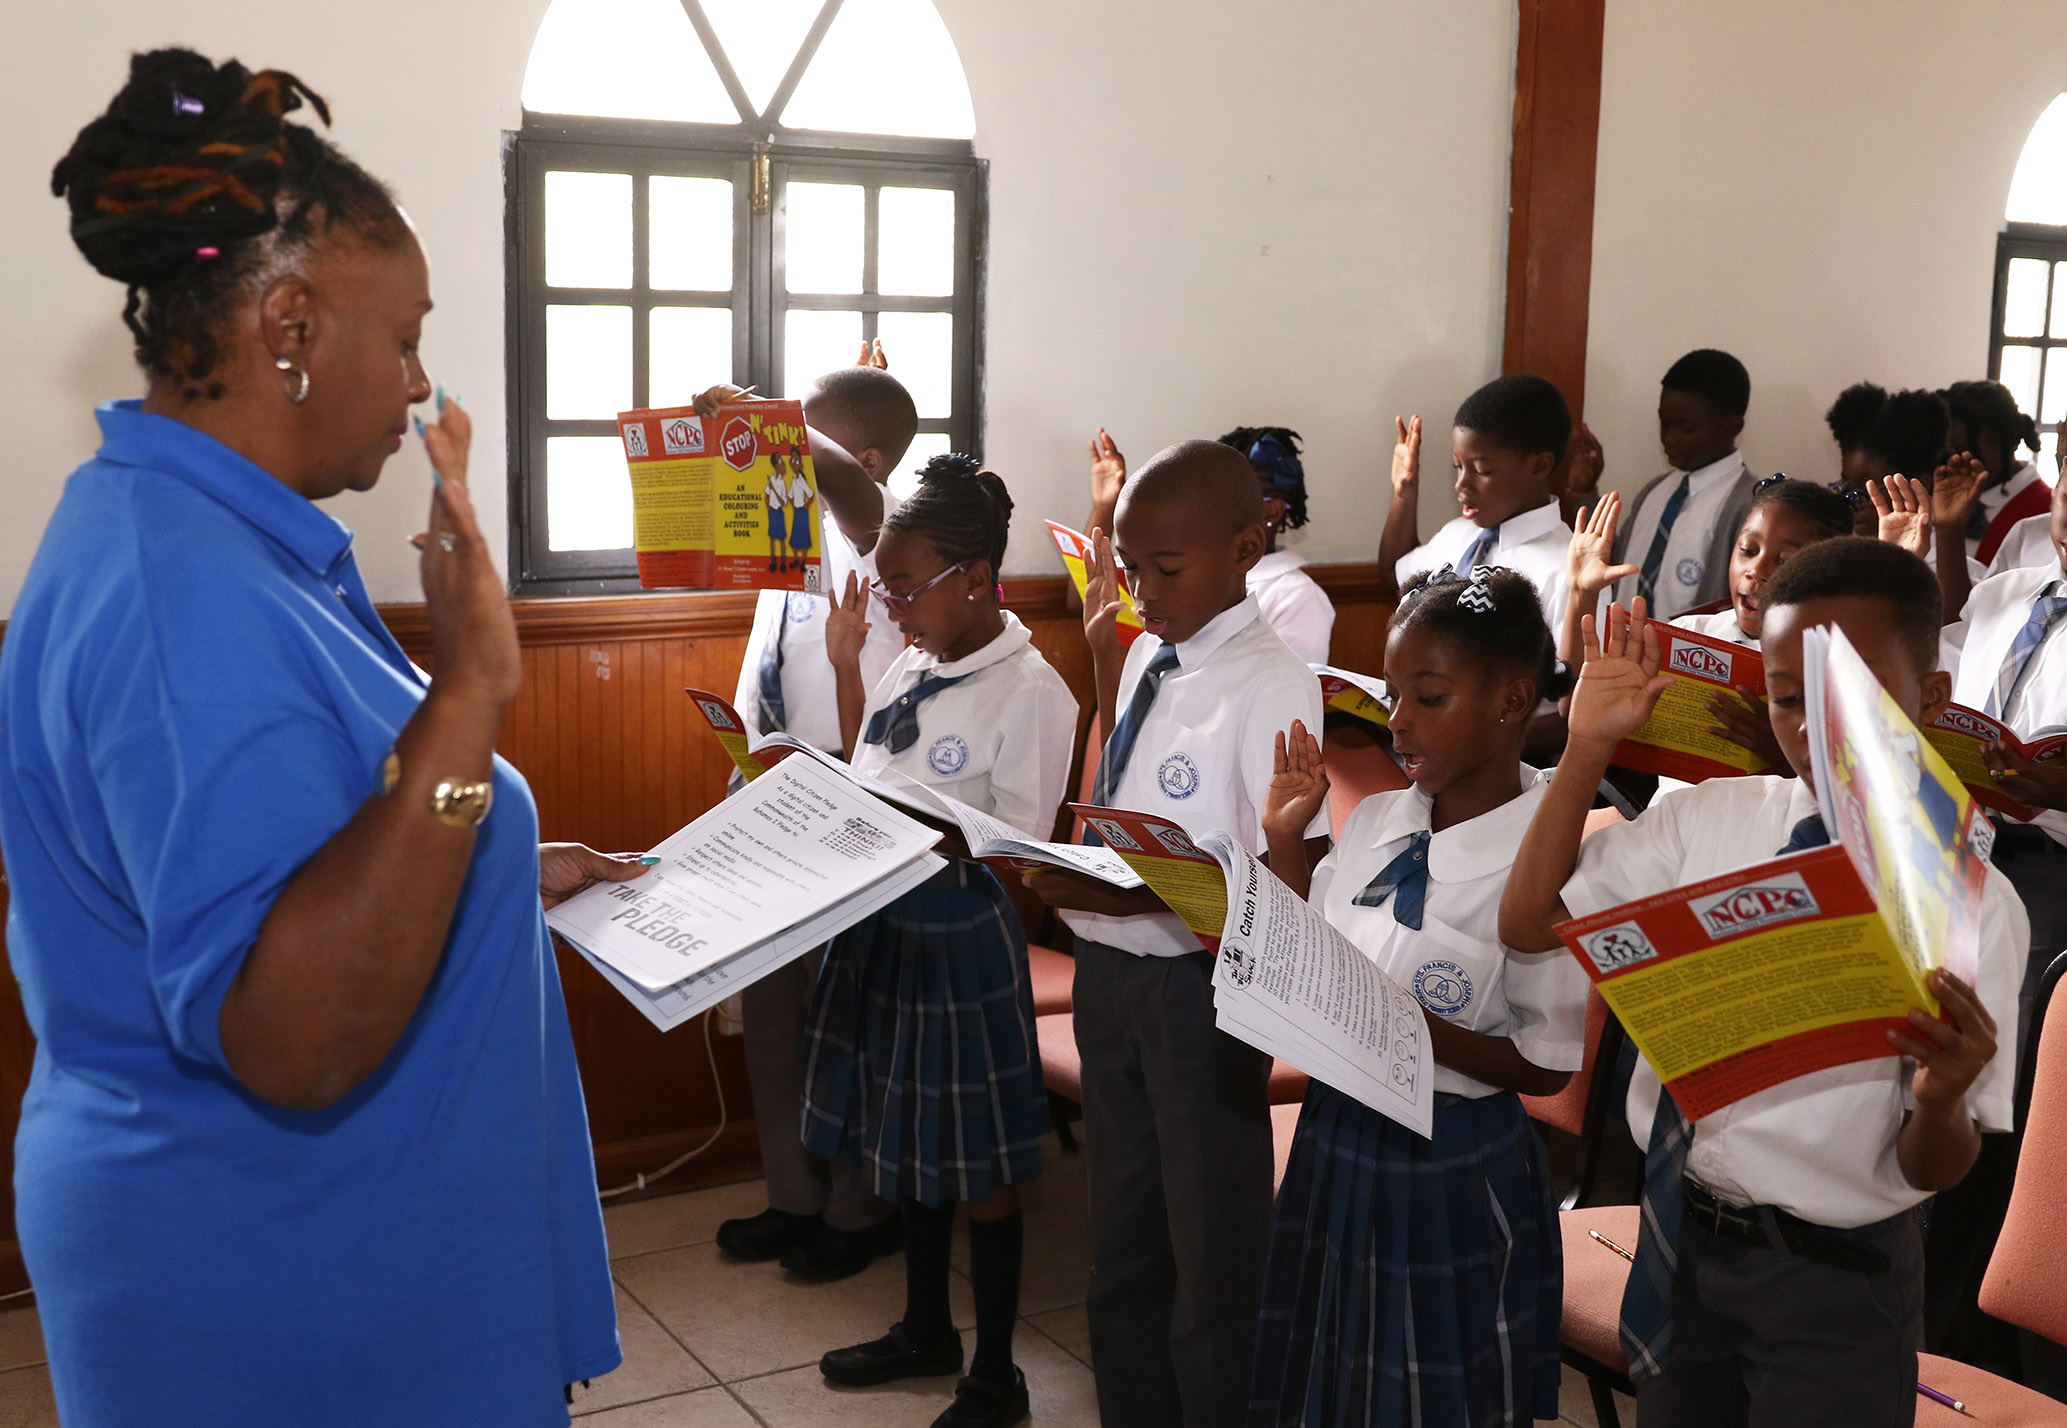 St. Francis and Joseph School 'Shockers' take child protection council's digital citizens pledge